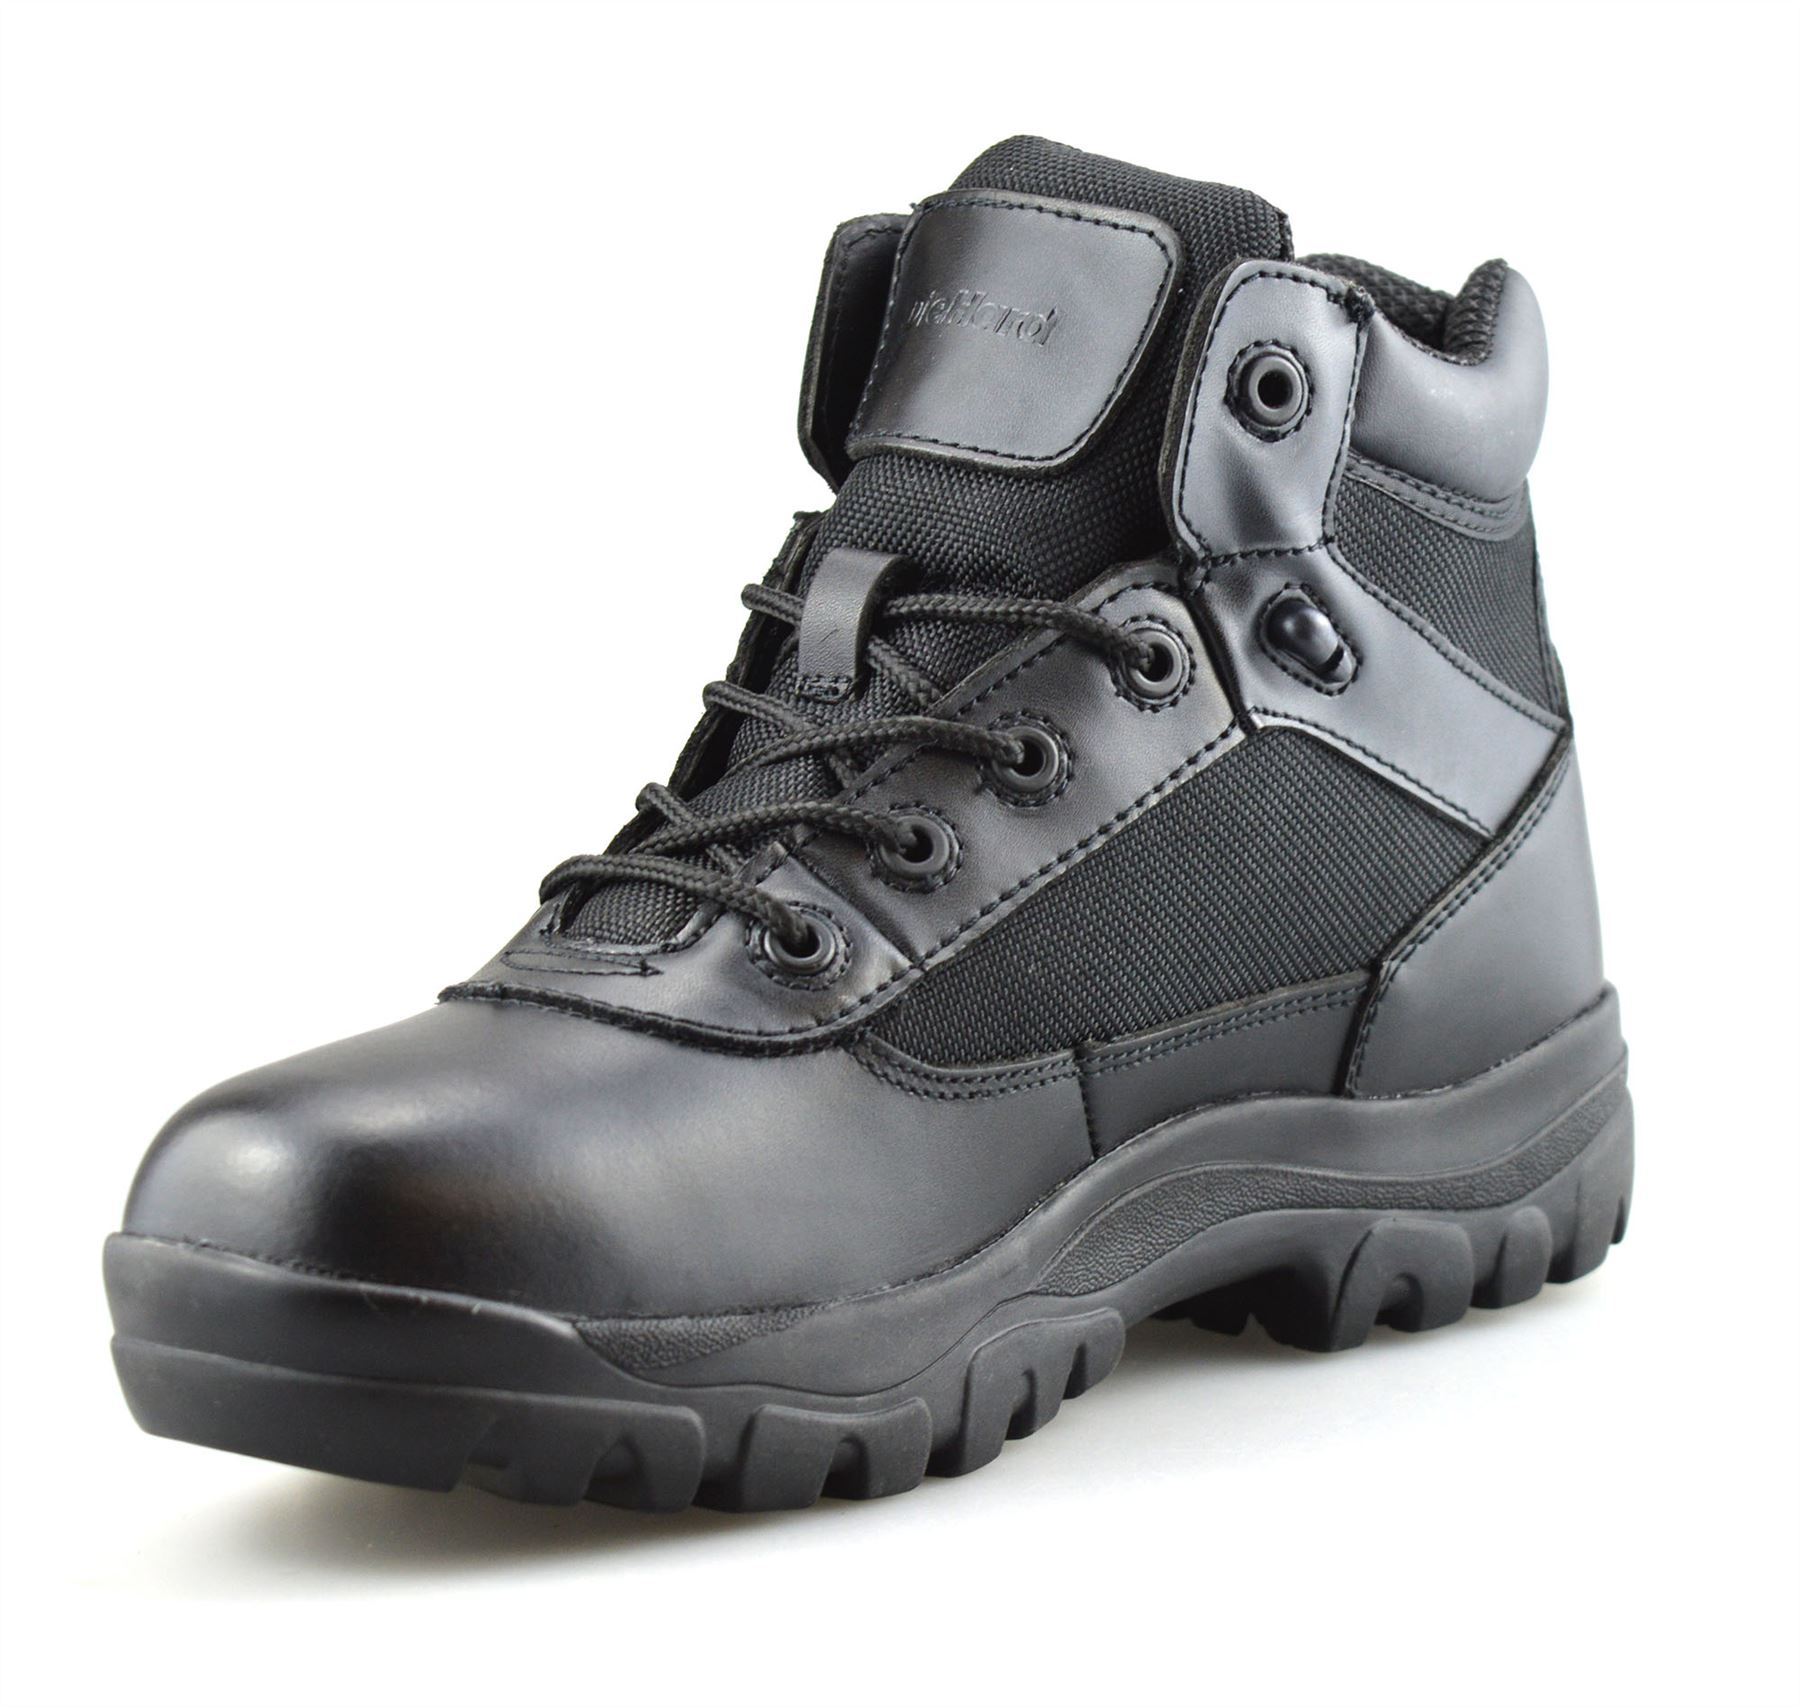 Mens-New-Leather-Military-Army-Combat-Walking-Hiking-Work-Ankle-Boots-Shoes-Size thumbnail 14